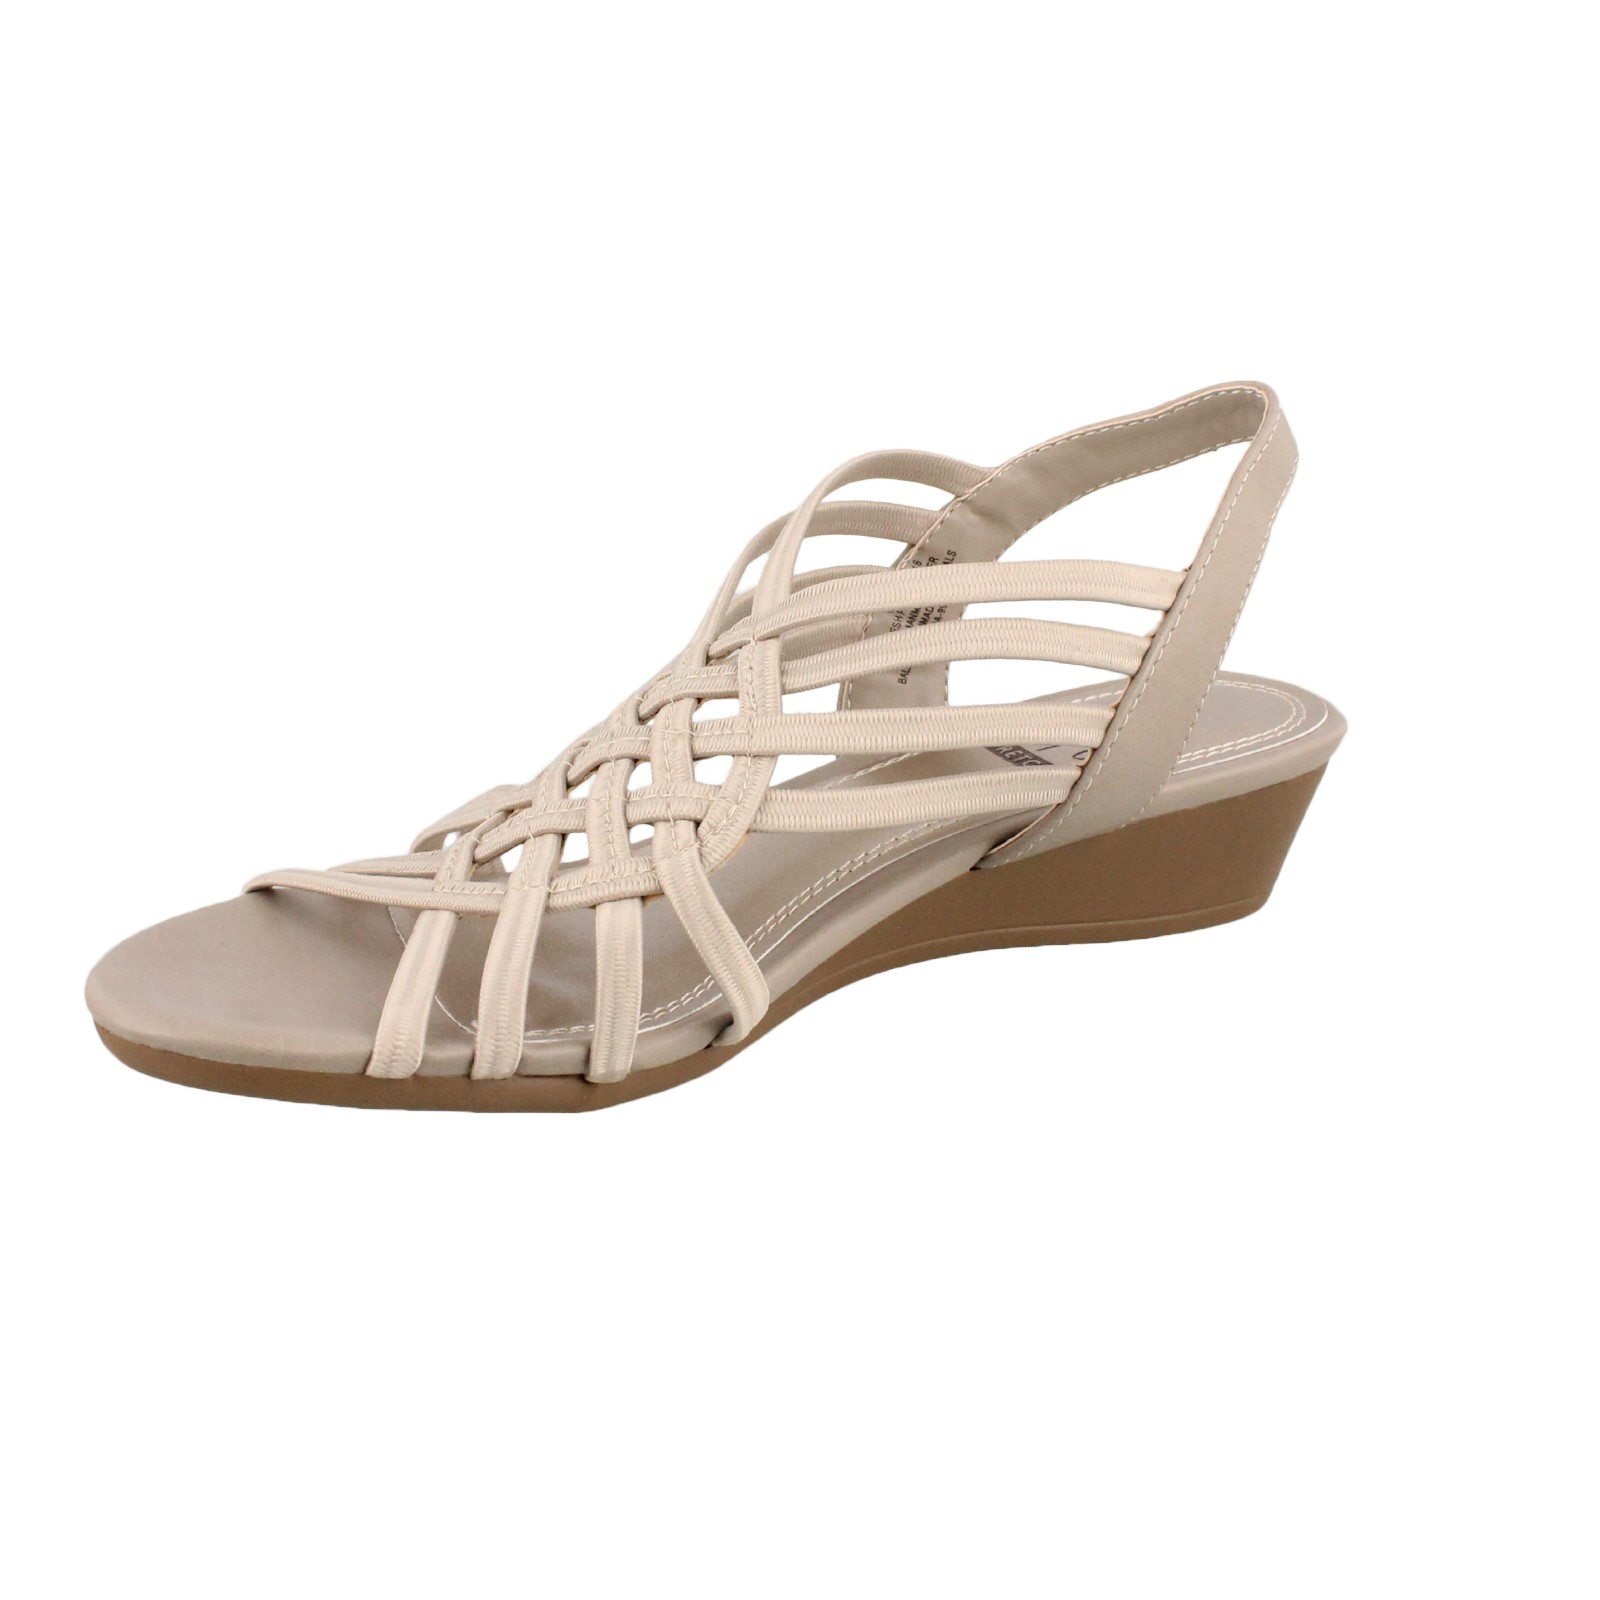 2343b74d260 Women's Impo, Refresh Strappy Low Wedge Sandals